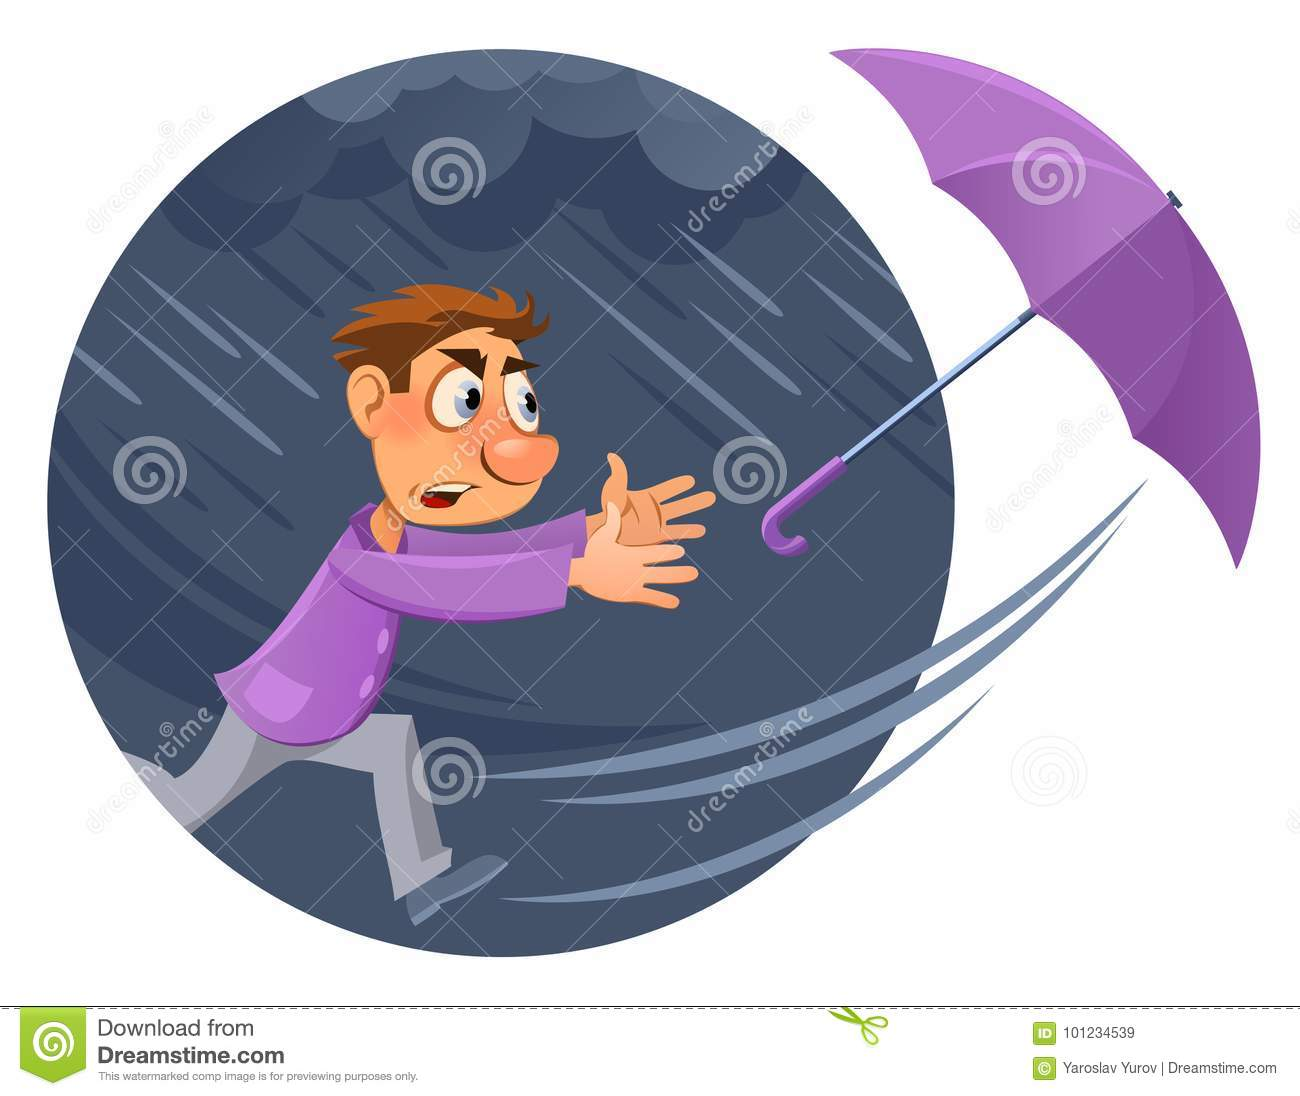 Bad weather. Rain and wind. Hurricane. Cartoon man tries to catch an umbrella.